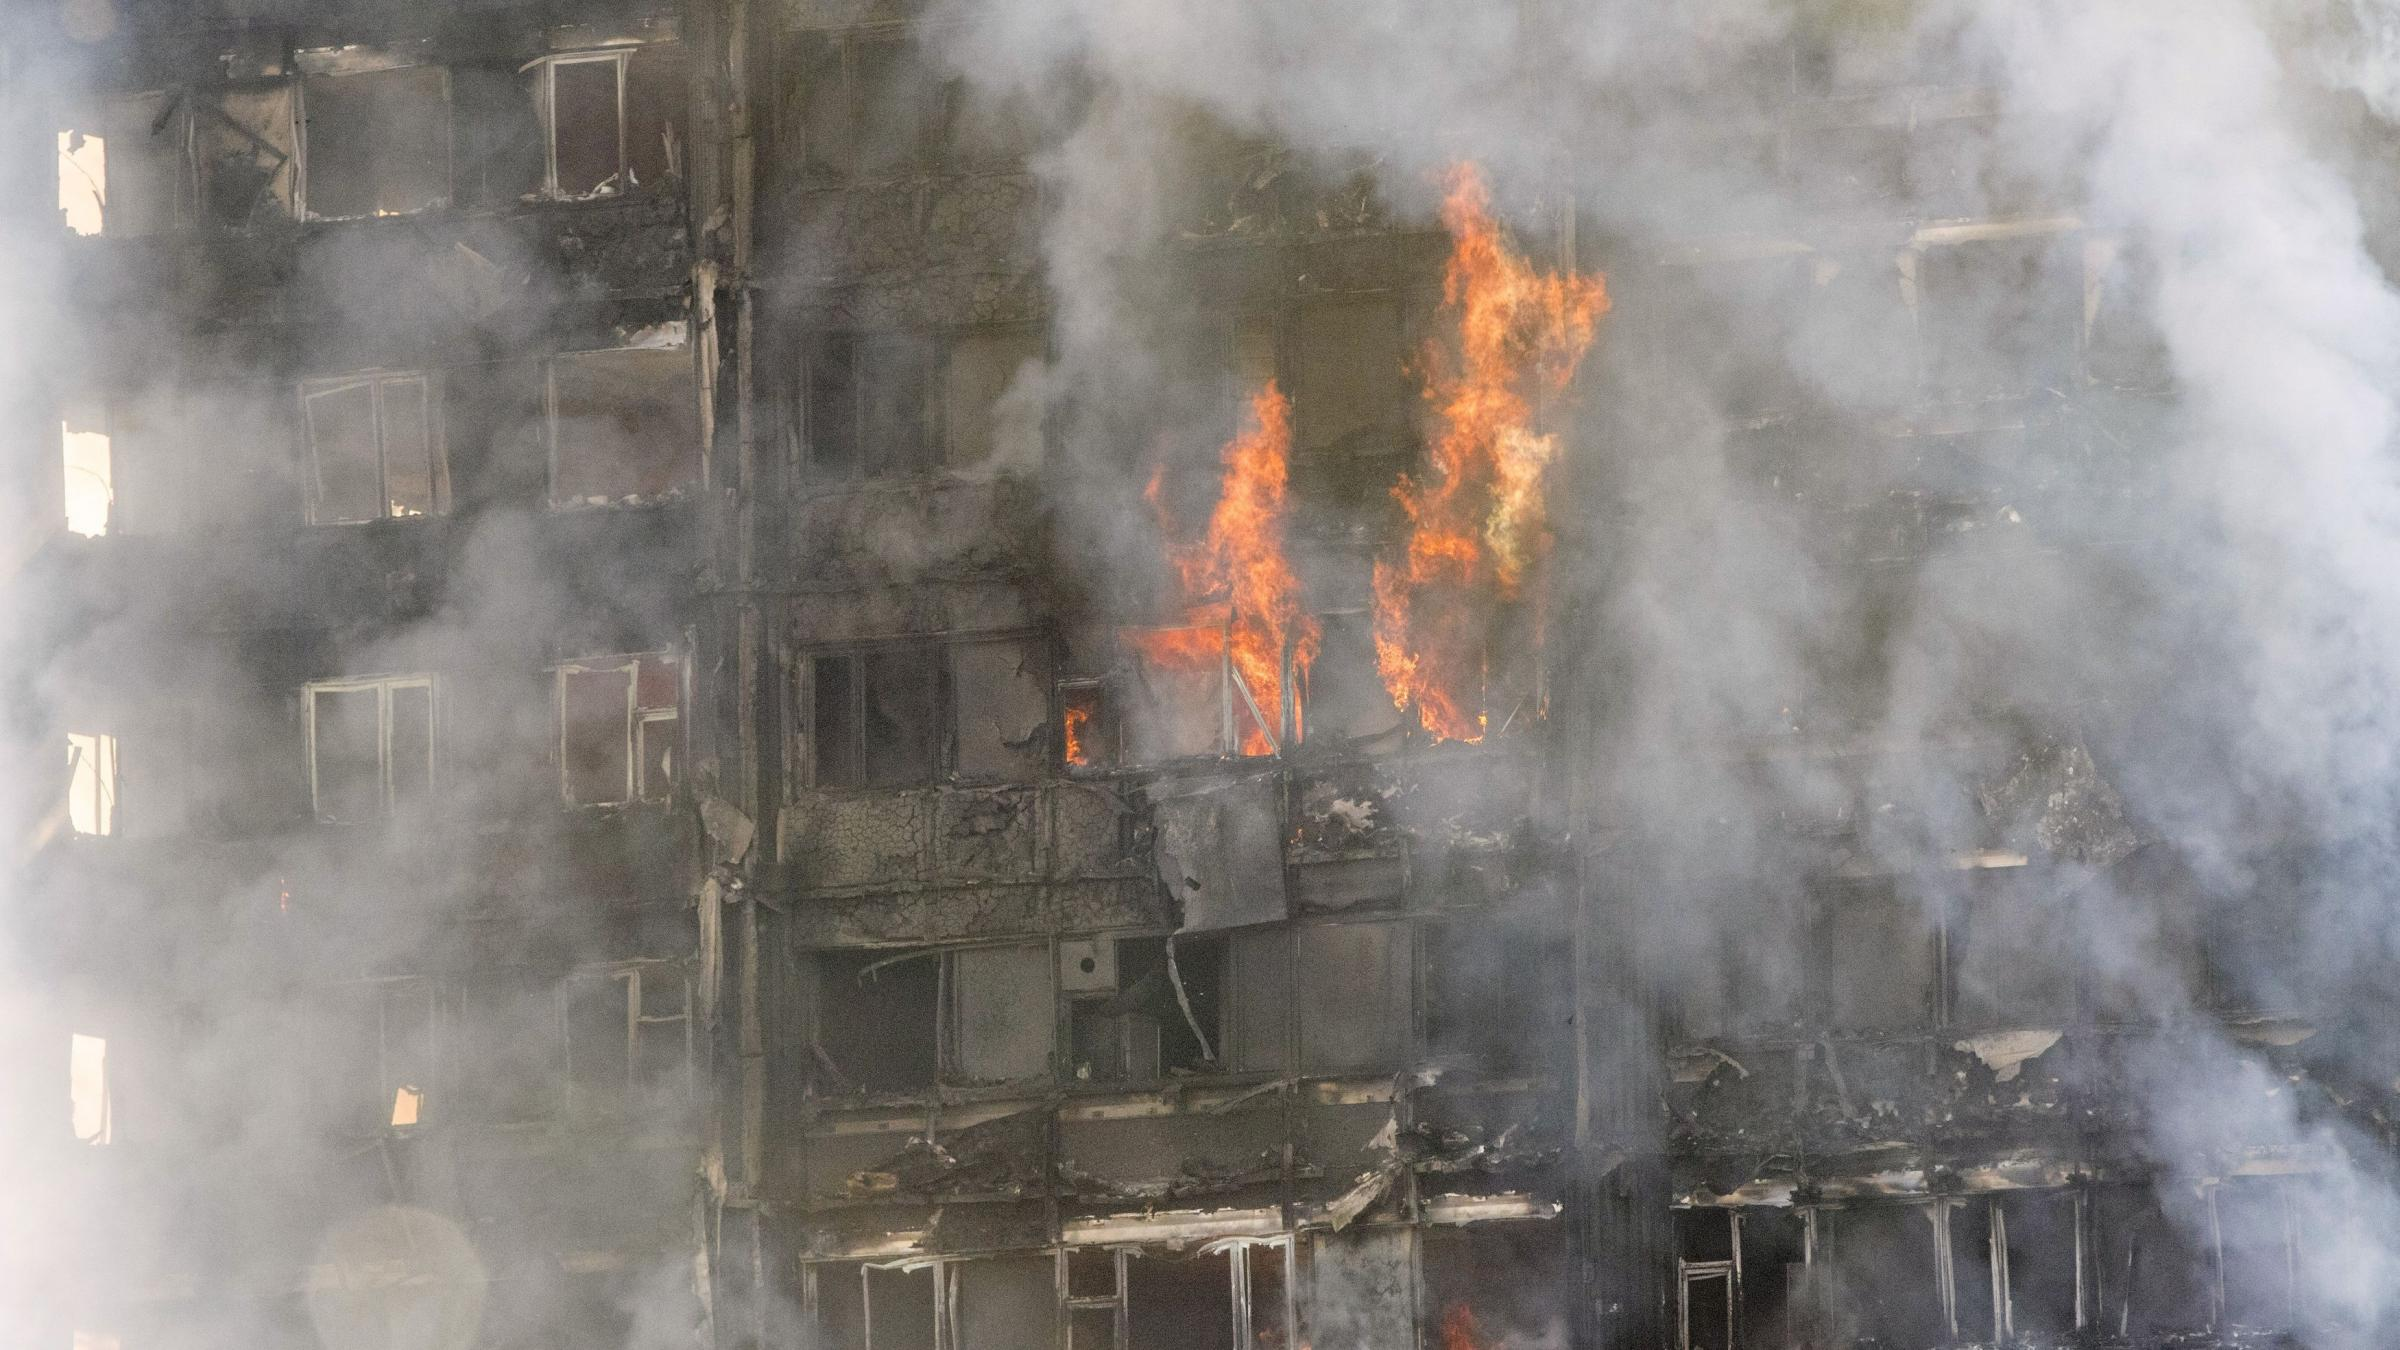 Firefighters battle massive blaze in London high-rise